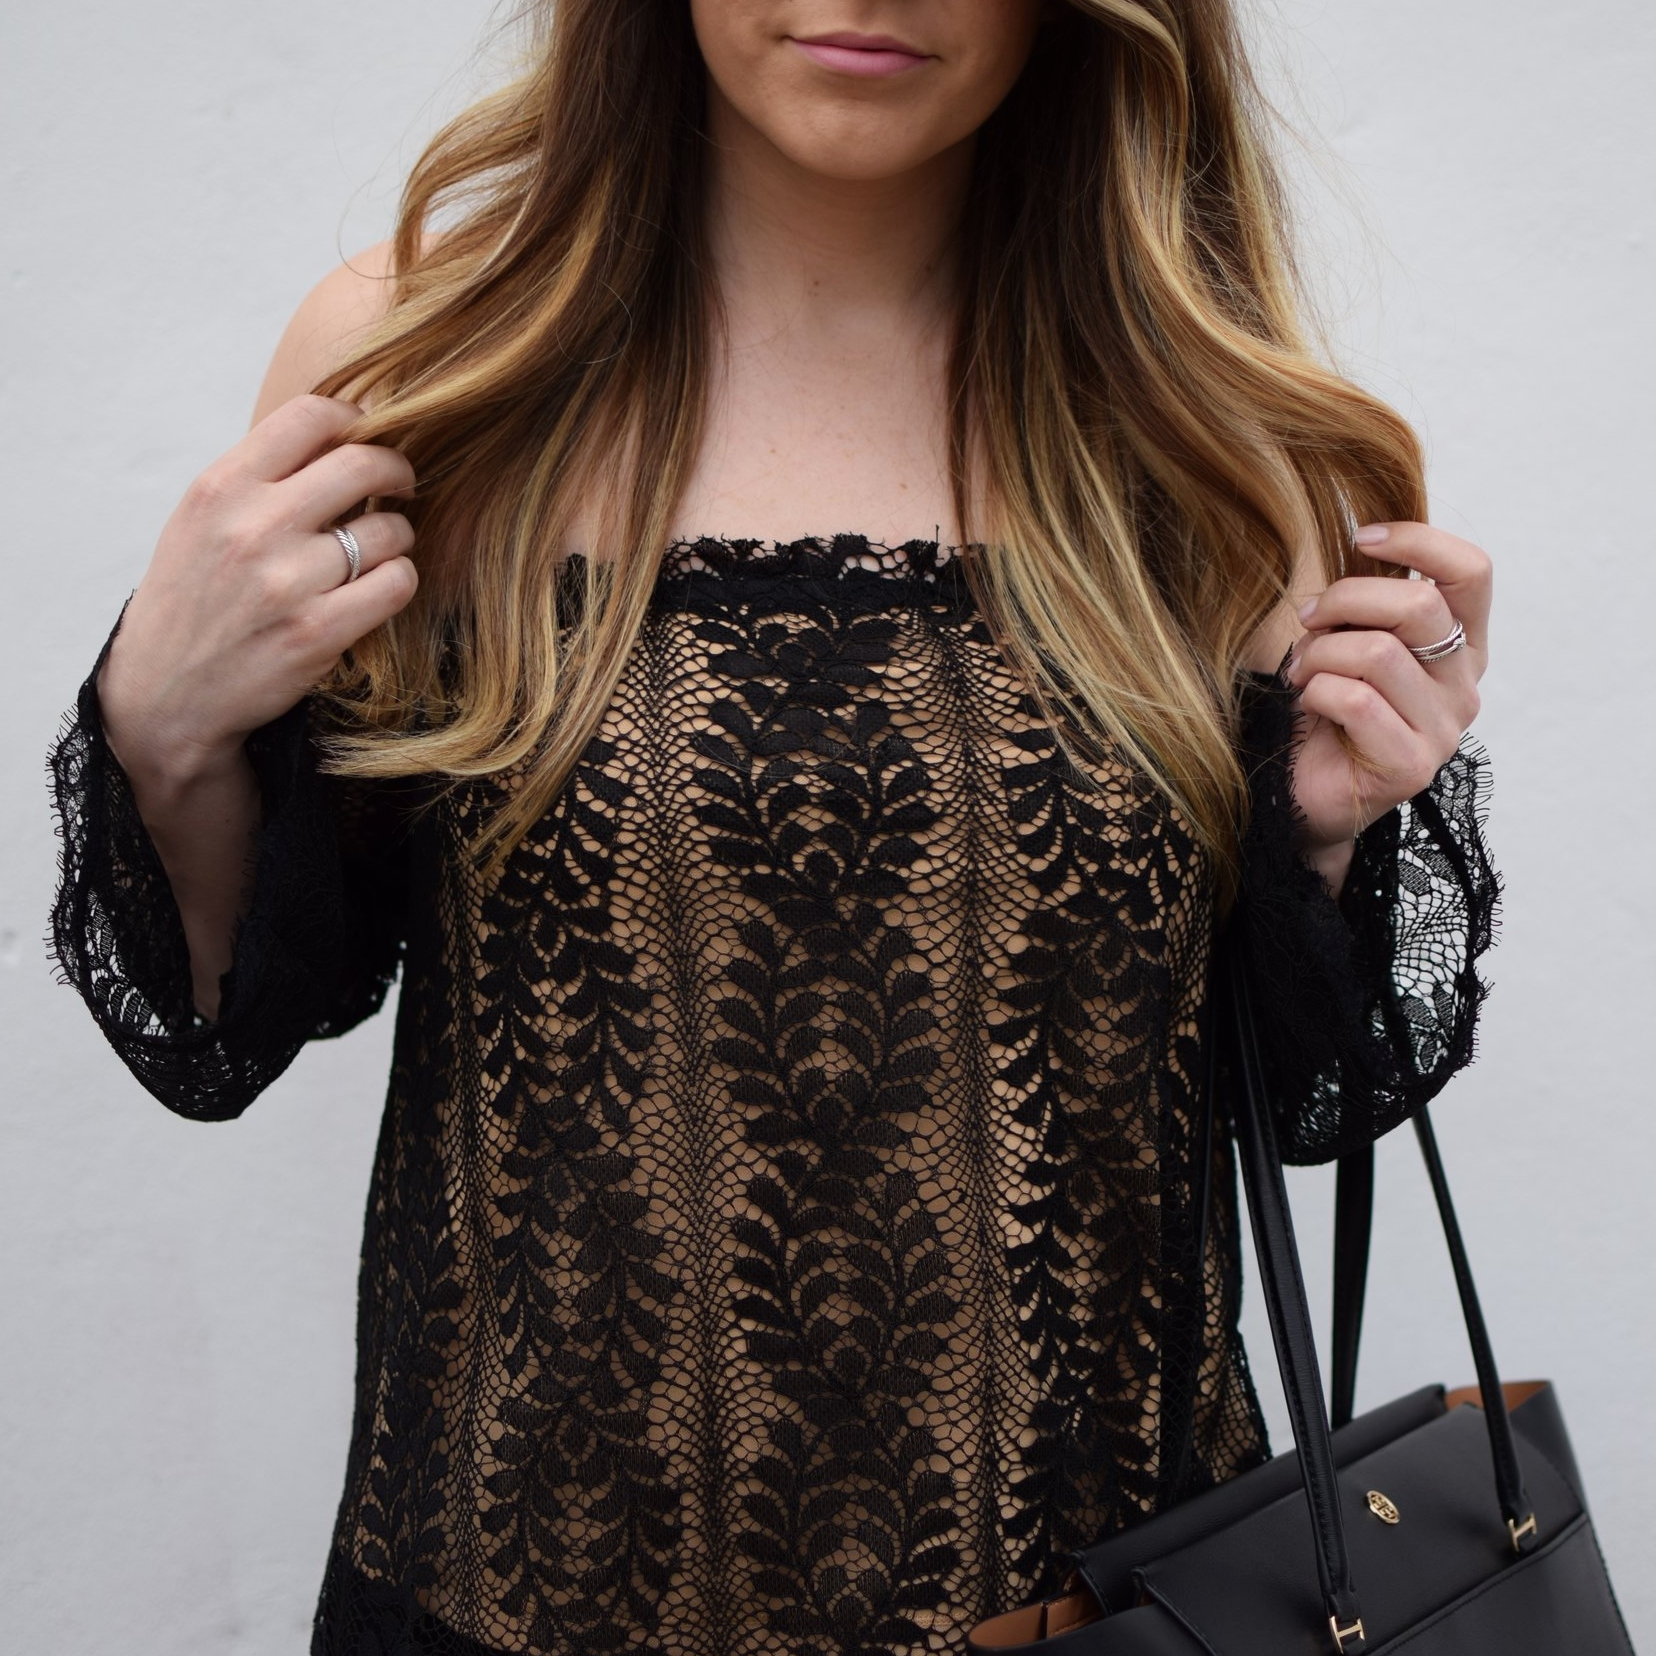 date night outfit idea / off the shoulder lace top